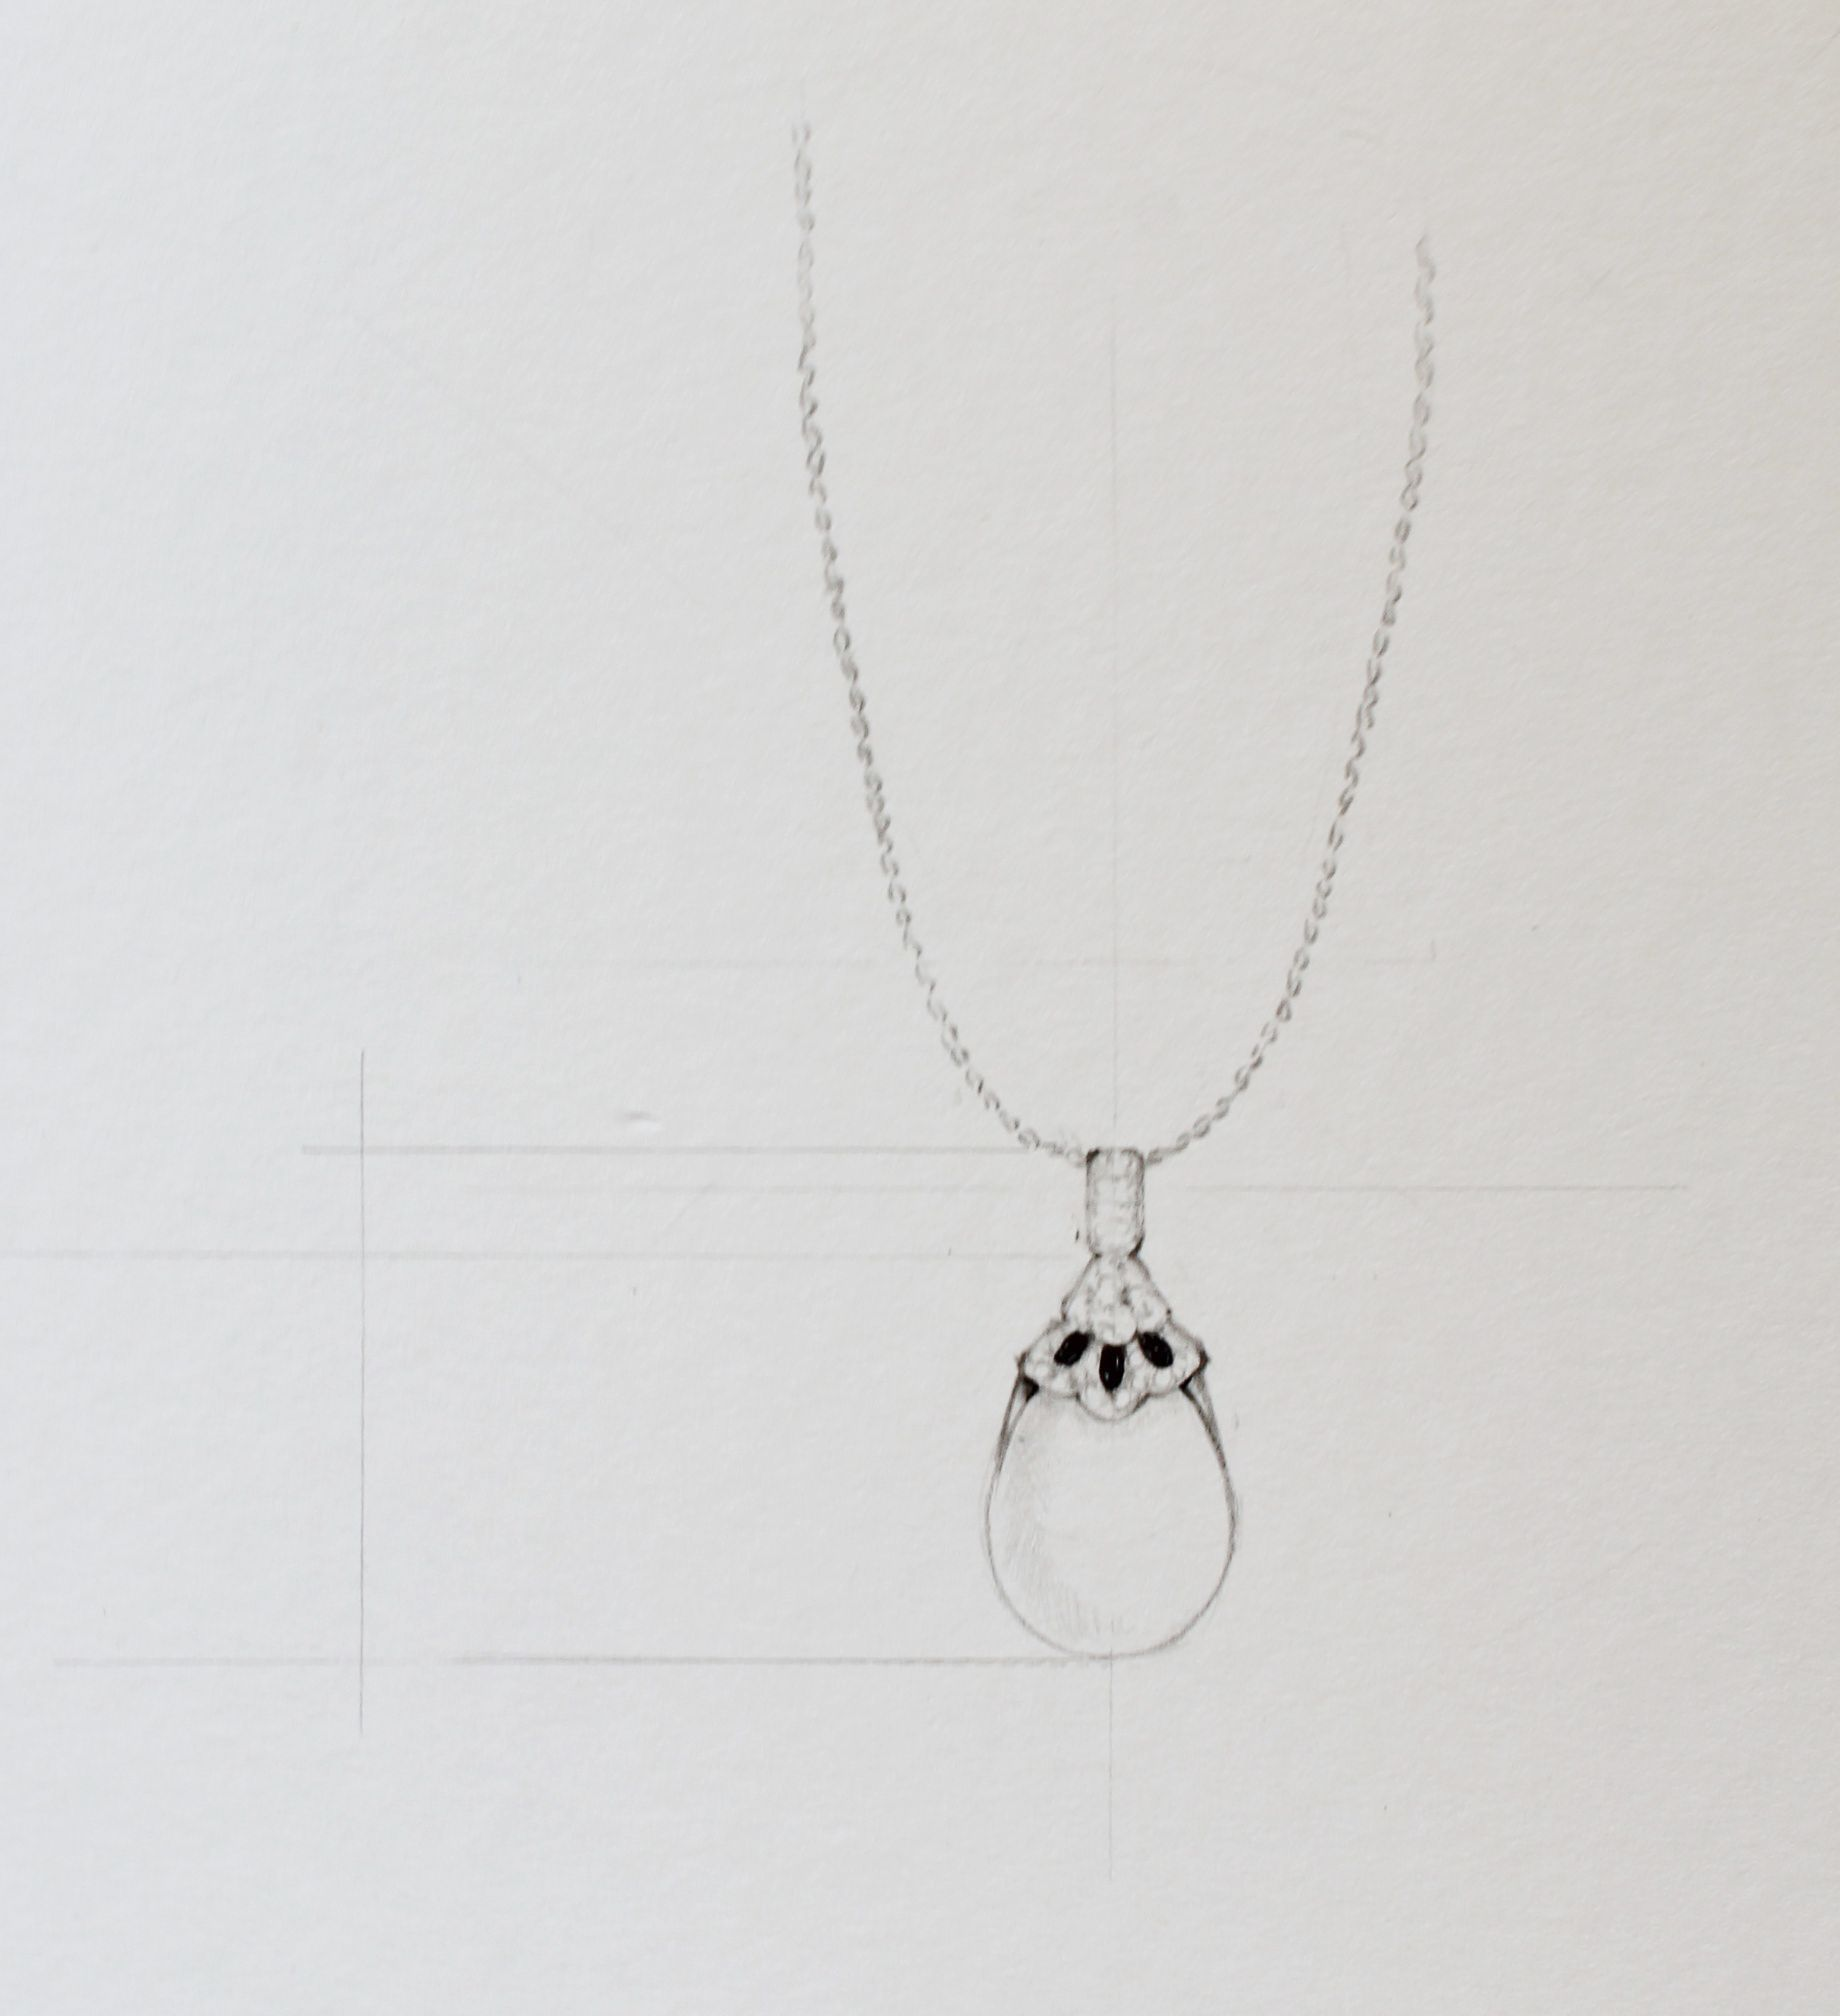 Drawing and Designing Jewelry: How To Draw Necklaces and